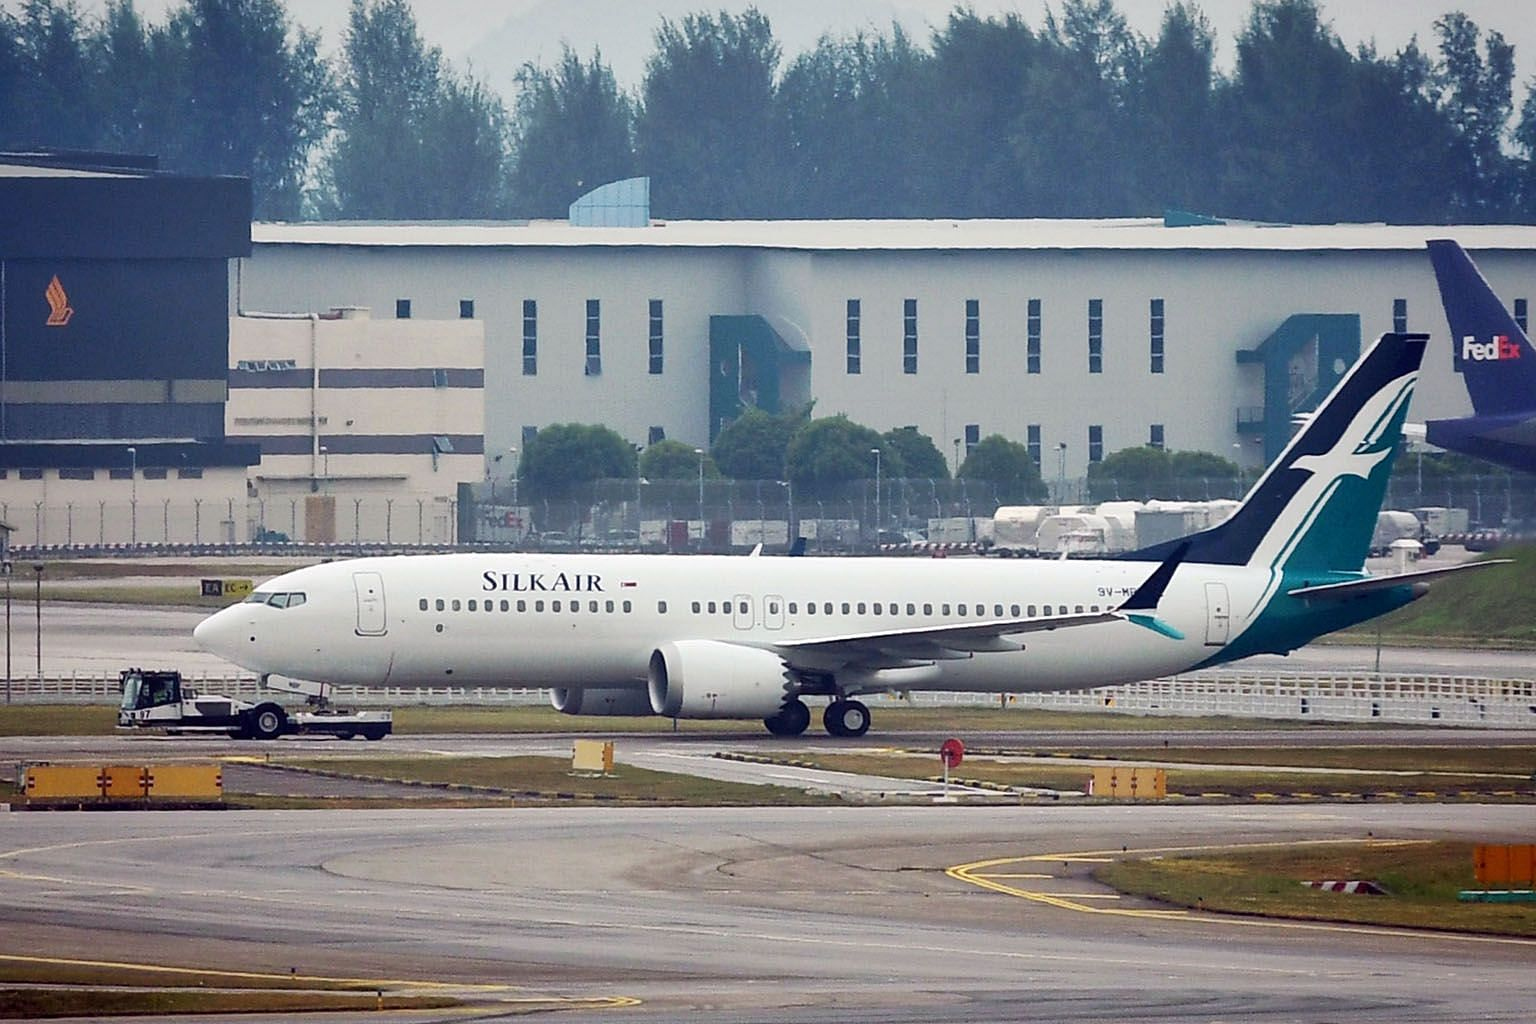 It is unclear when the B-737 Max 8 will fly again, with the Federal Aviation Administration in the United States in the midst of forming an international team to review the safety of the aircraft.